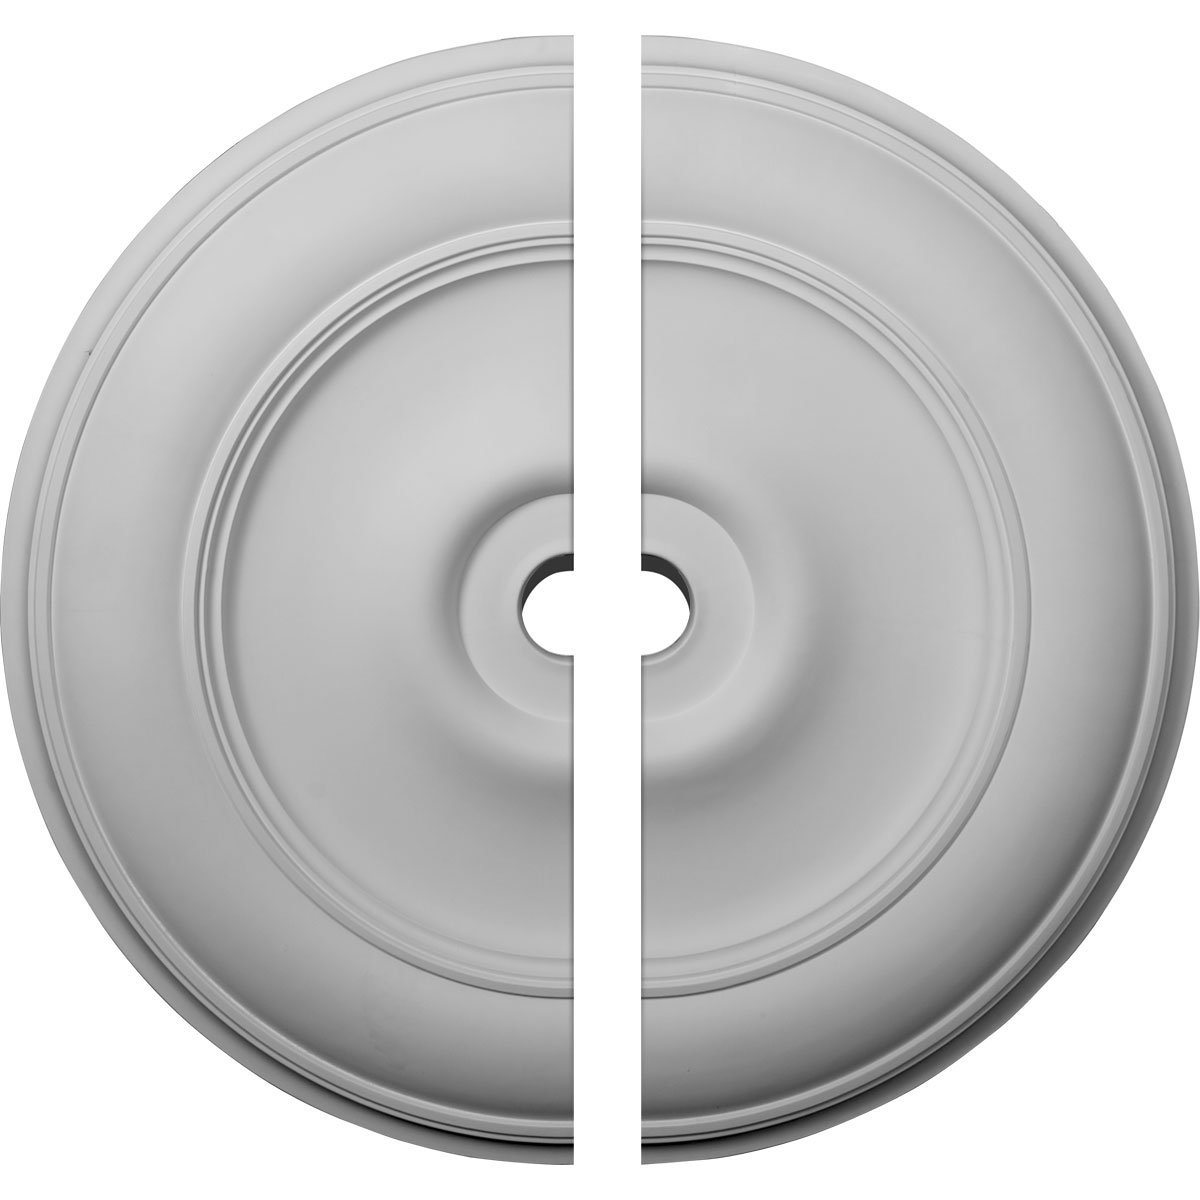 Ekena Millwork CM44CL2 44 1/2'' OD ID x 4''P Classic Ceiling Medallion, Two Piece (Fits Canopies up to 8 1/4''), Factory Primed White